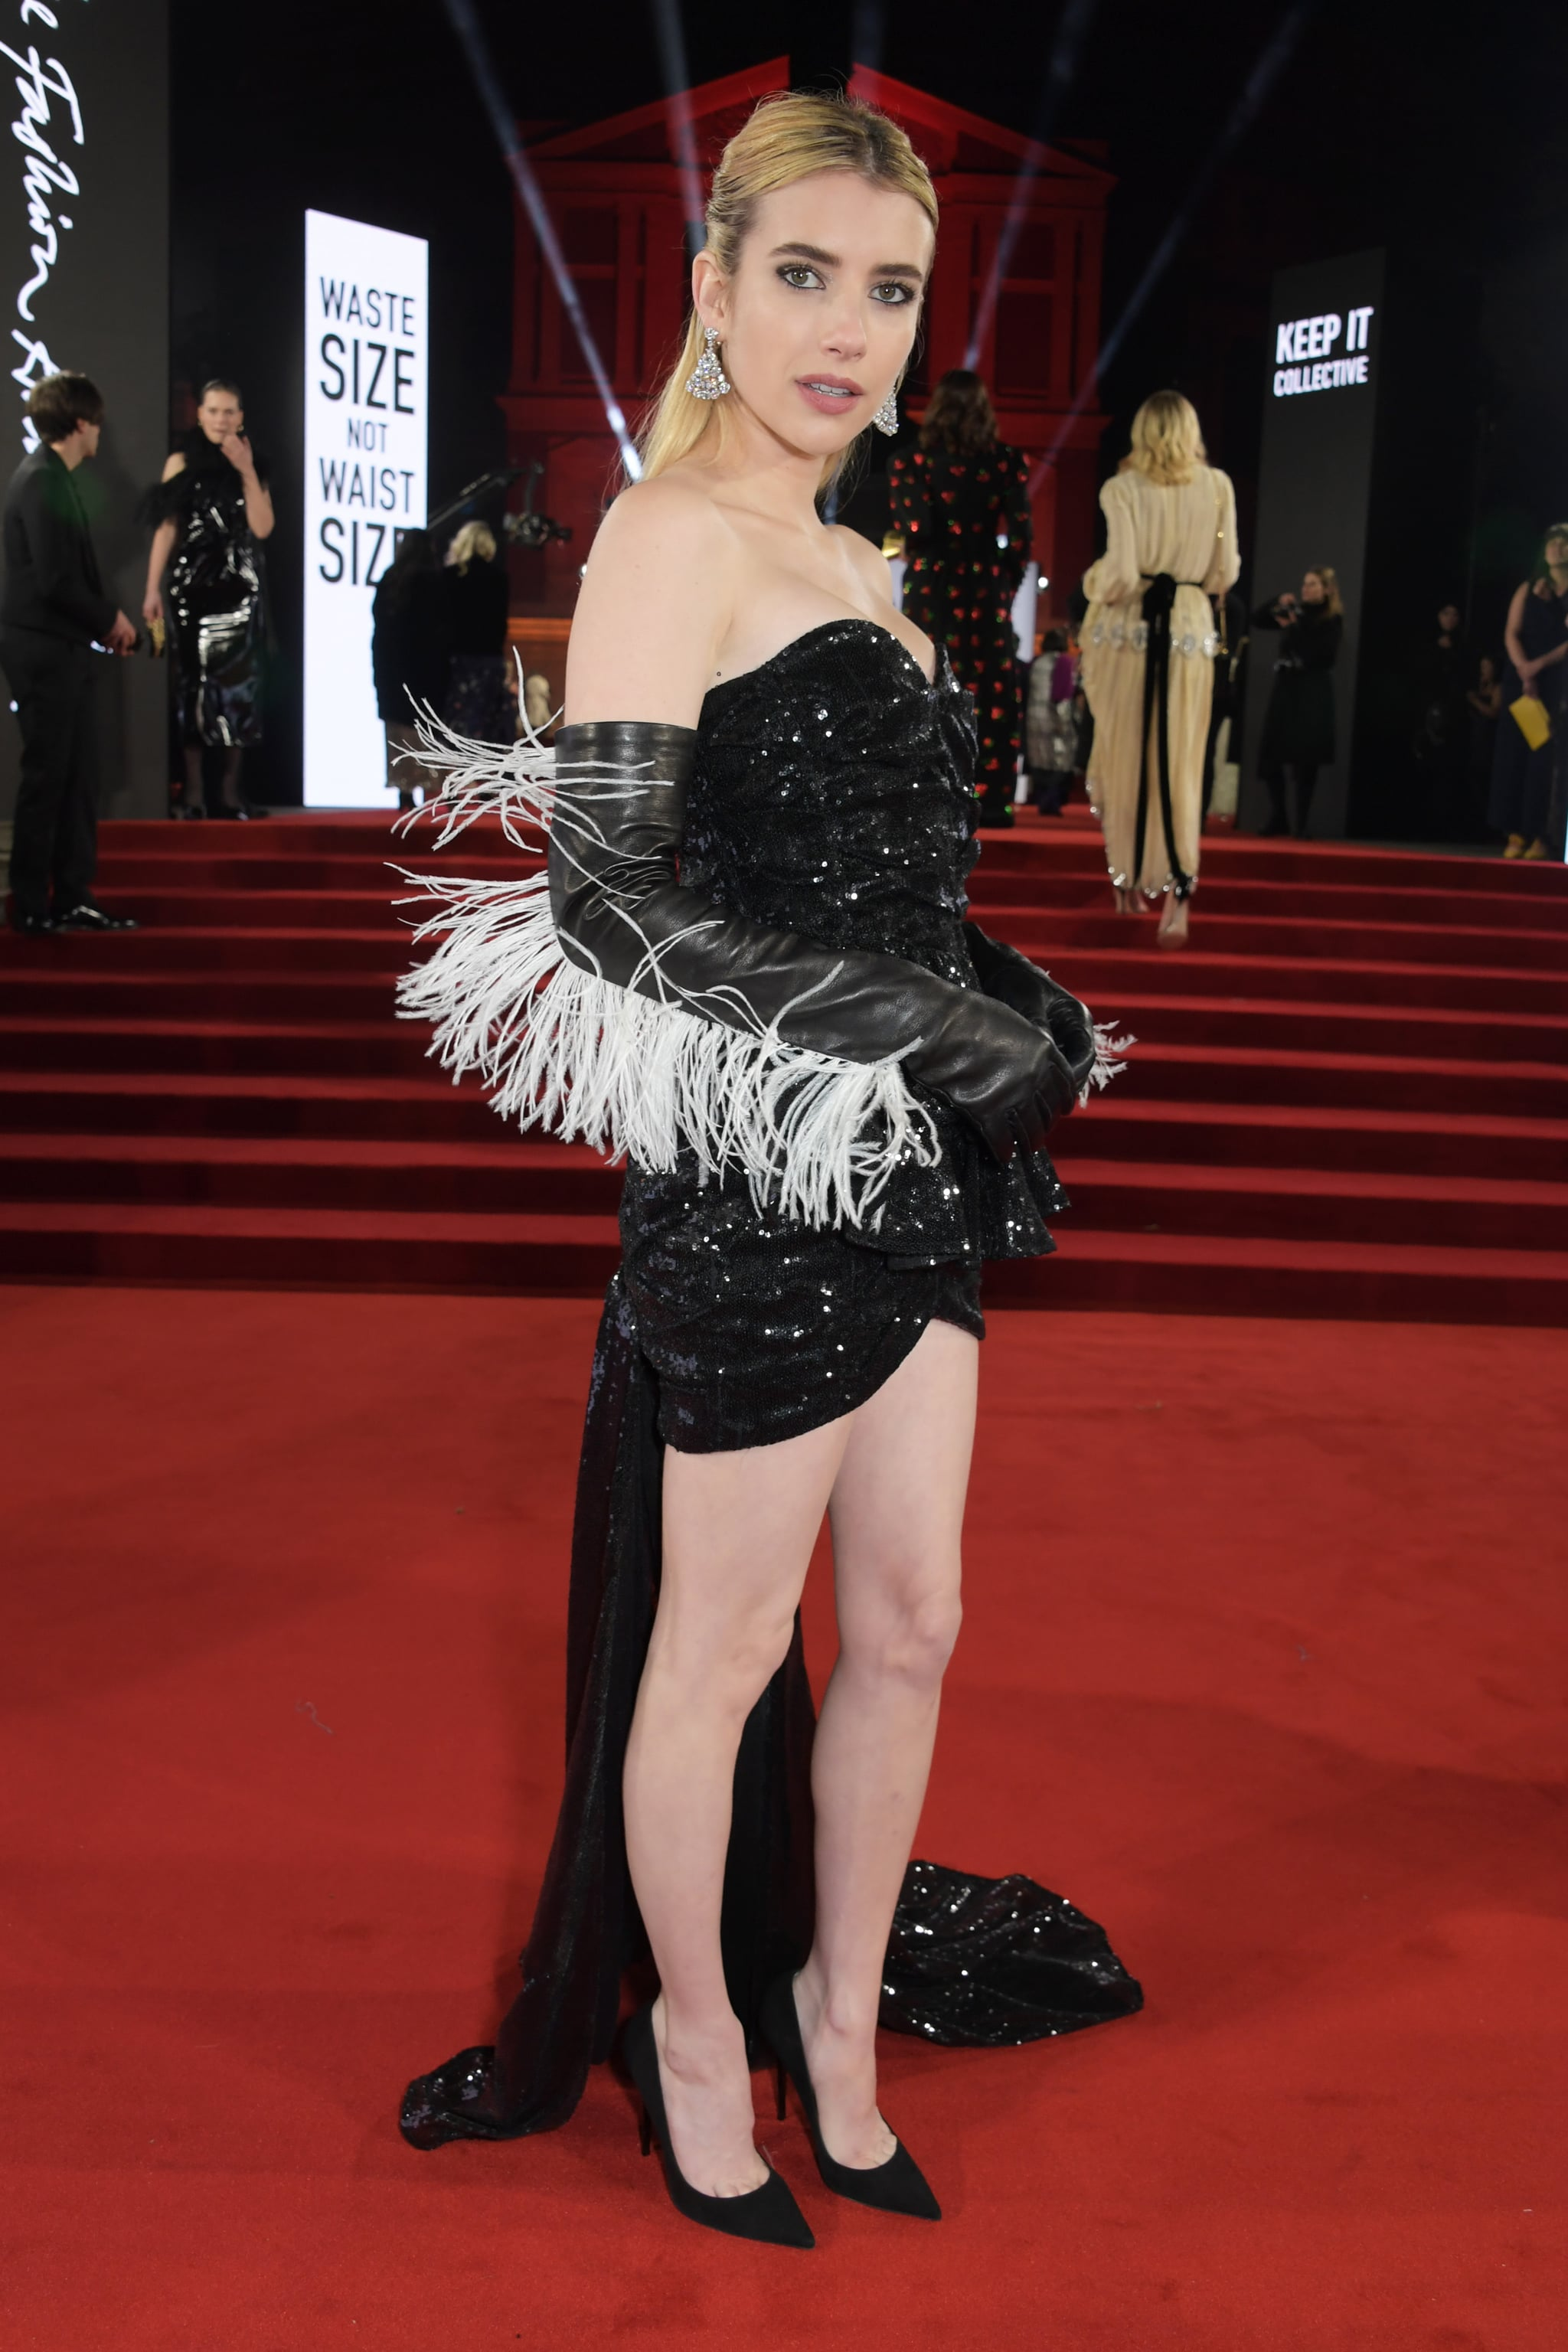 Emma Roberts At The British Fashion Awards 2019 In London The Best Moments From The British Fashion Awards In 116 Fabulous Photos Popsugar Celebrity Photo 55